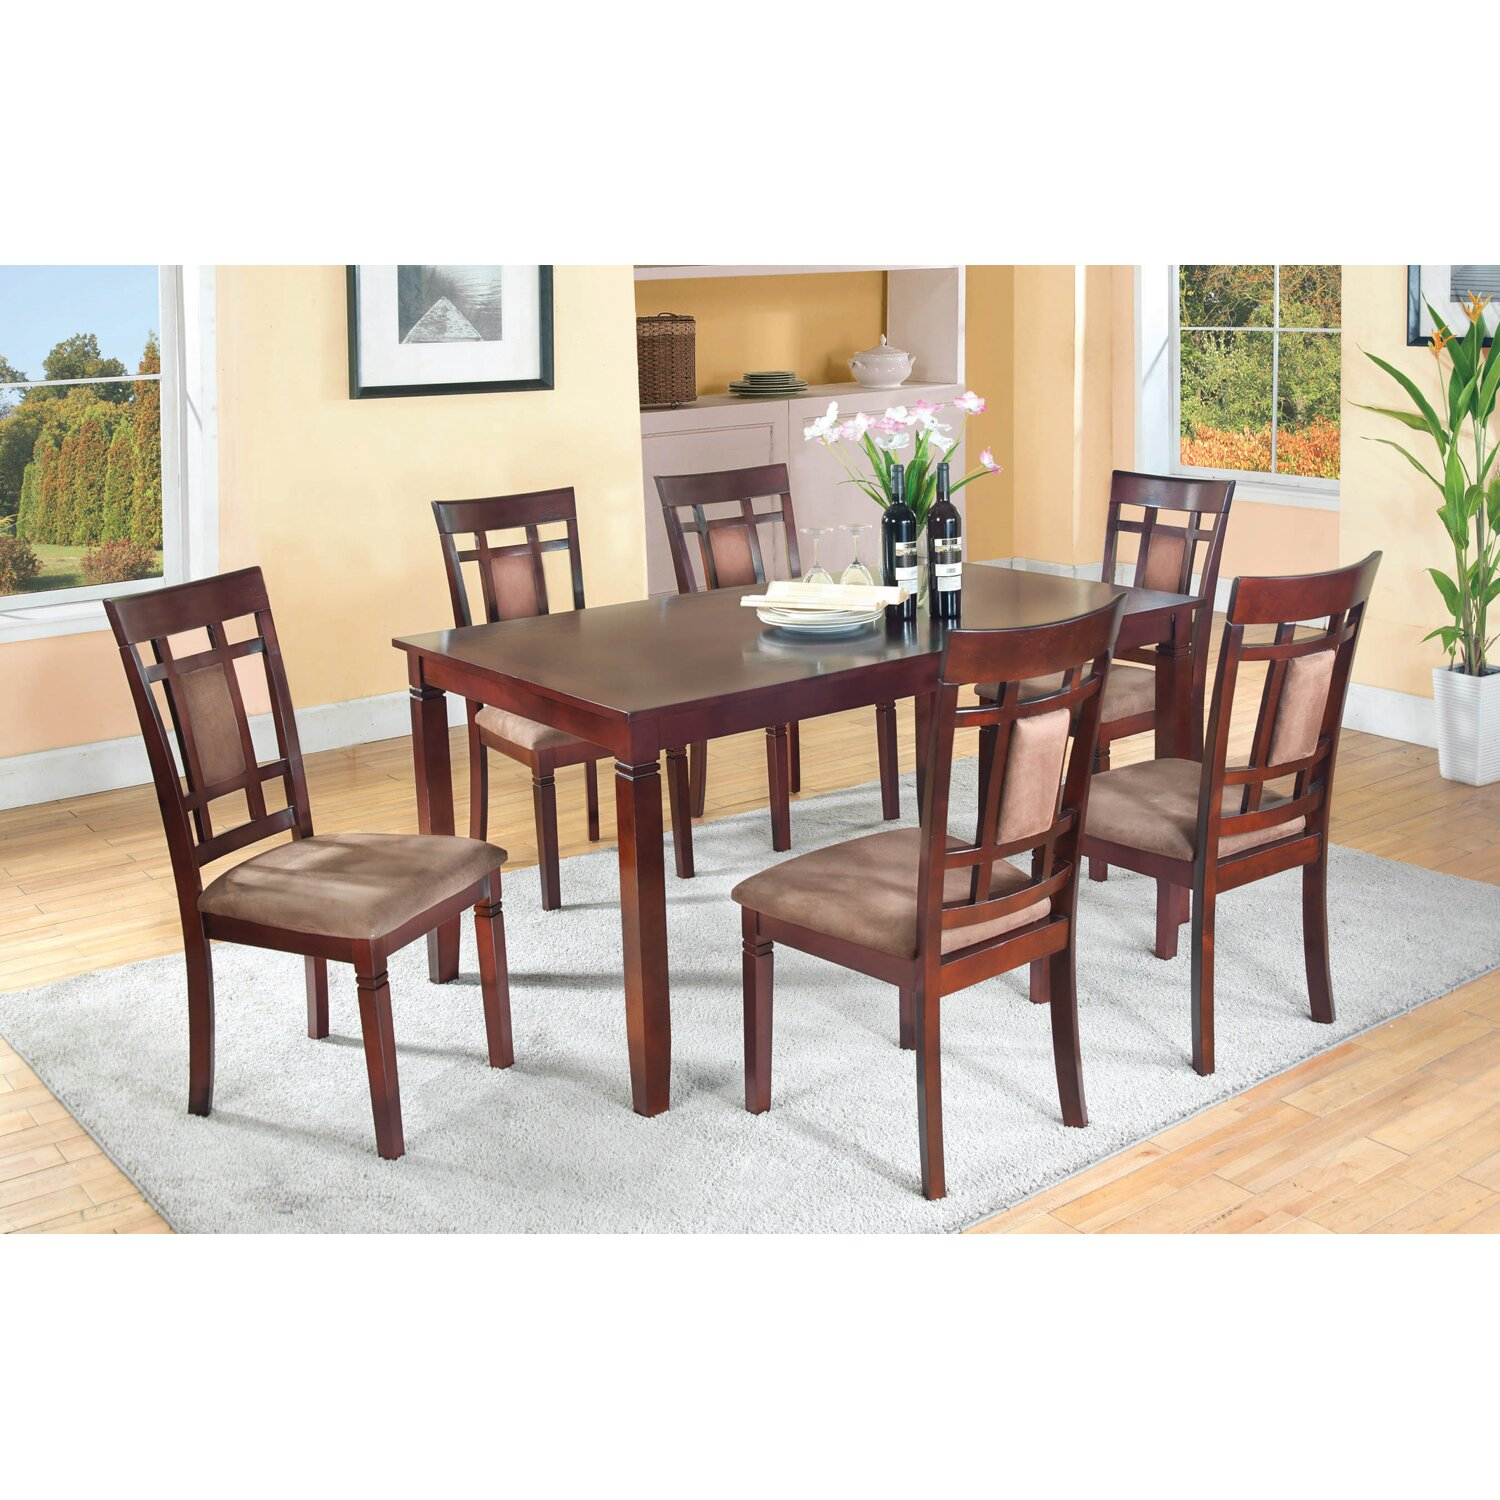 7 Piece Dining Room Set: Darby Home Co Patrick 7 Piece Dining Set & Reviews